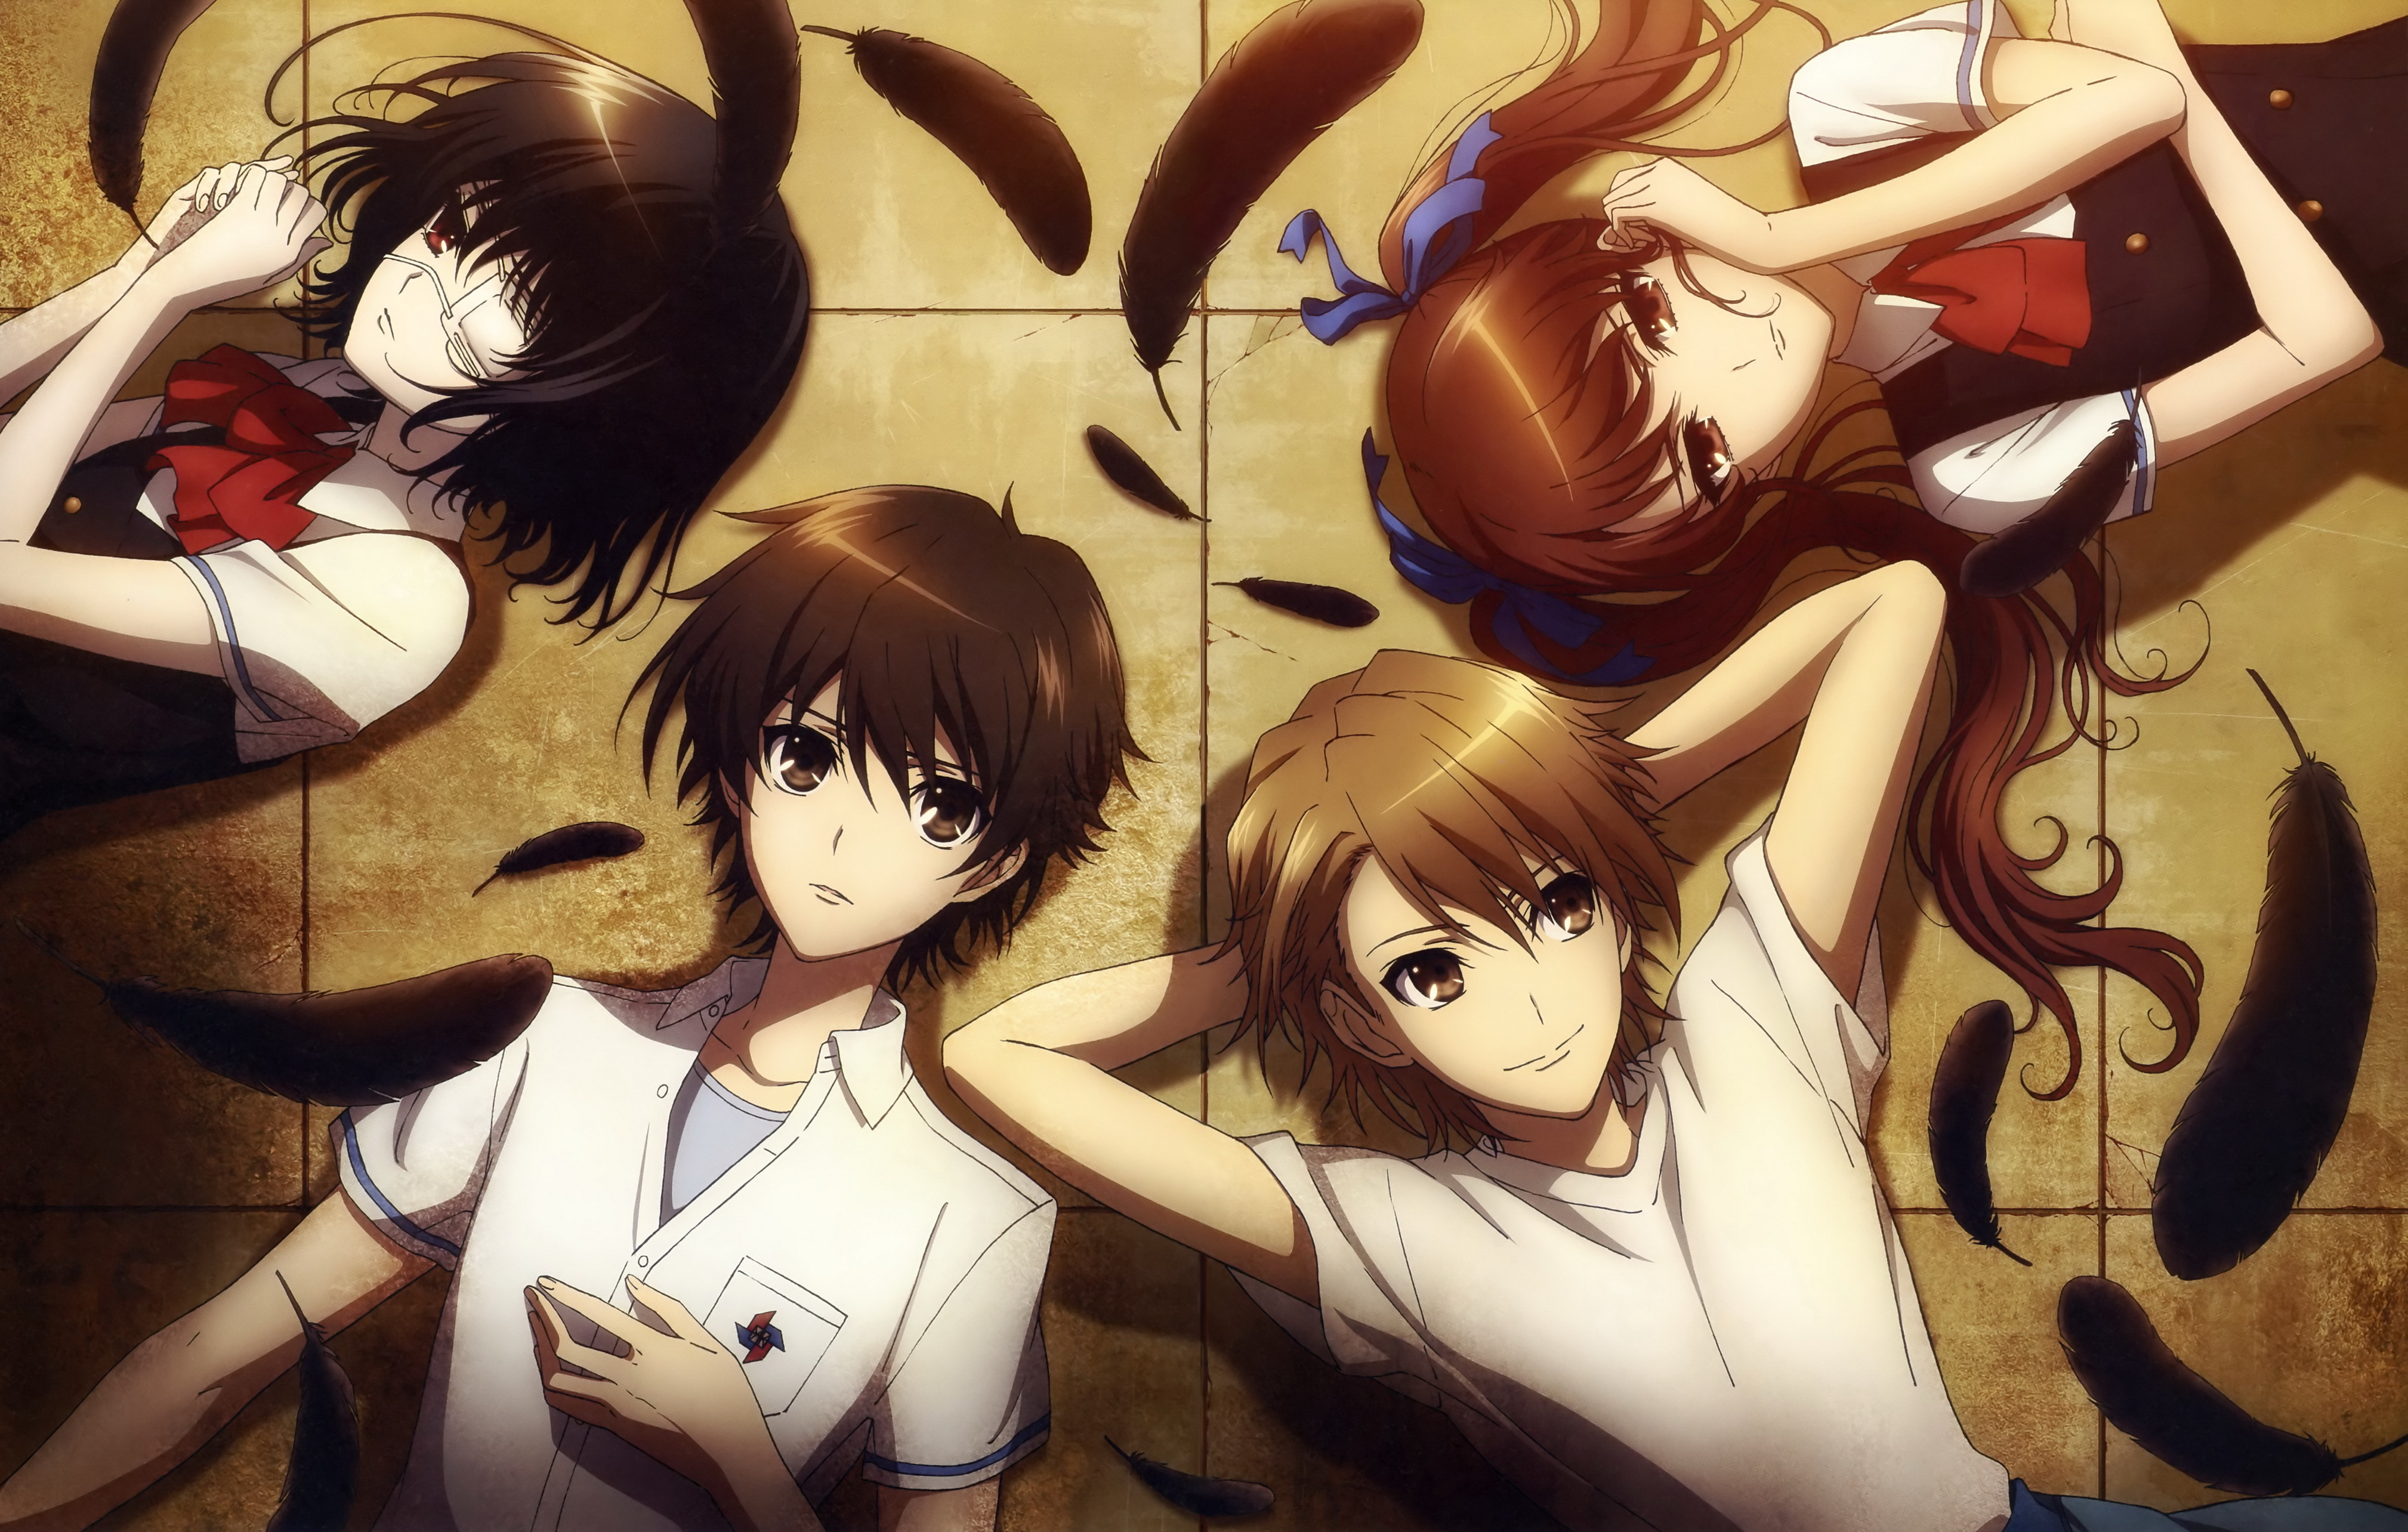 Hd wallpaper background image id639788 4036x2568 anime another